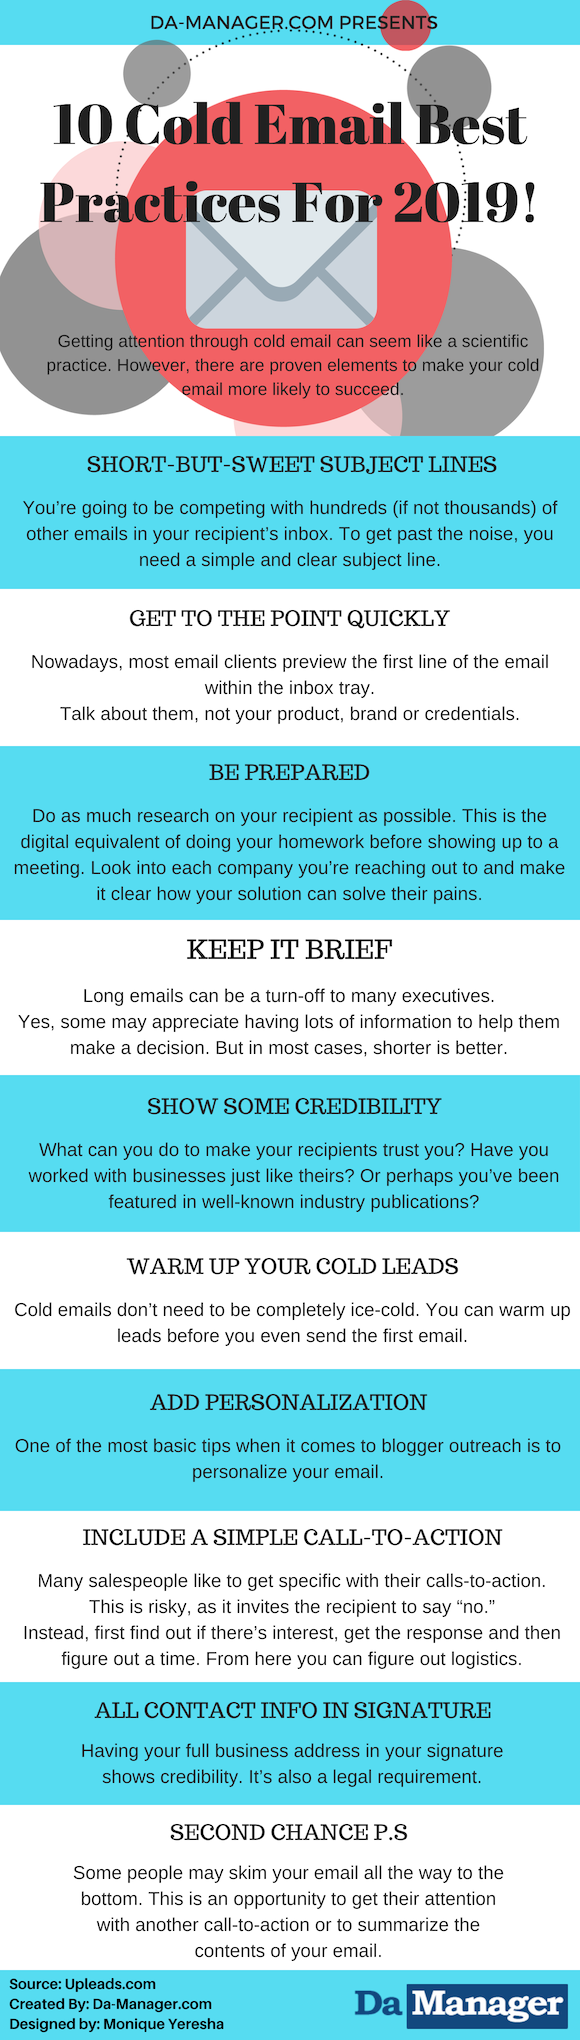 10 Cold Email Best Practices For Success